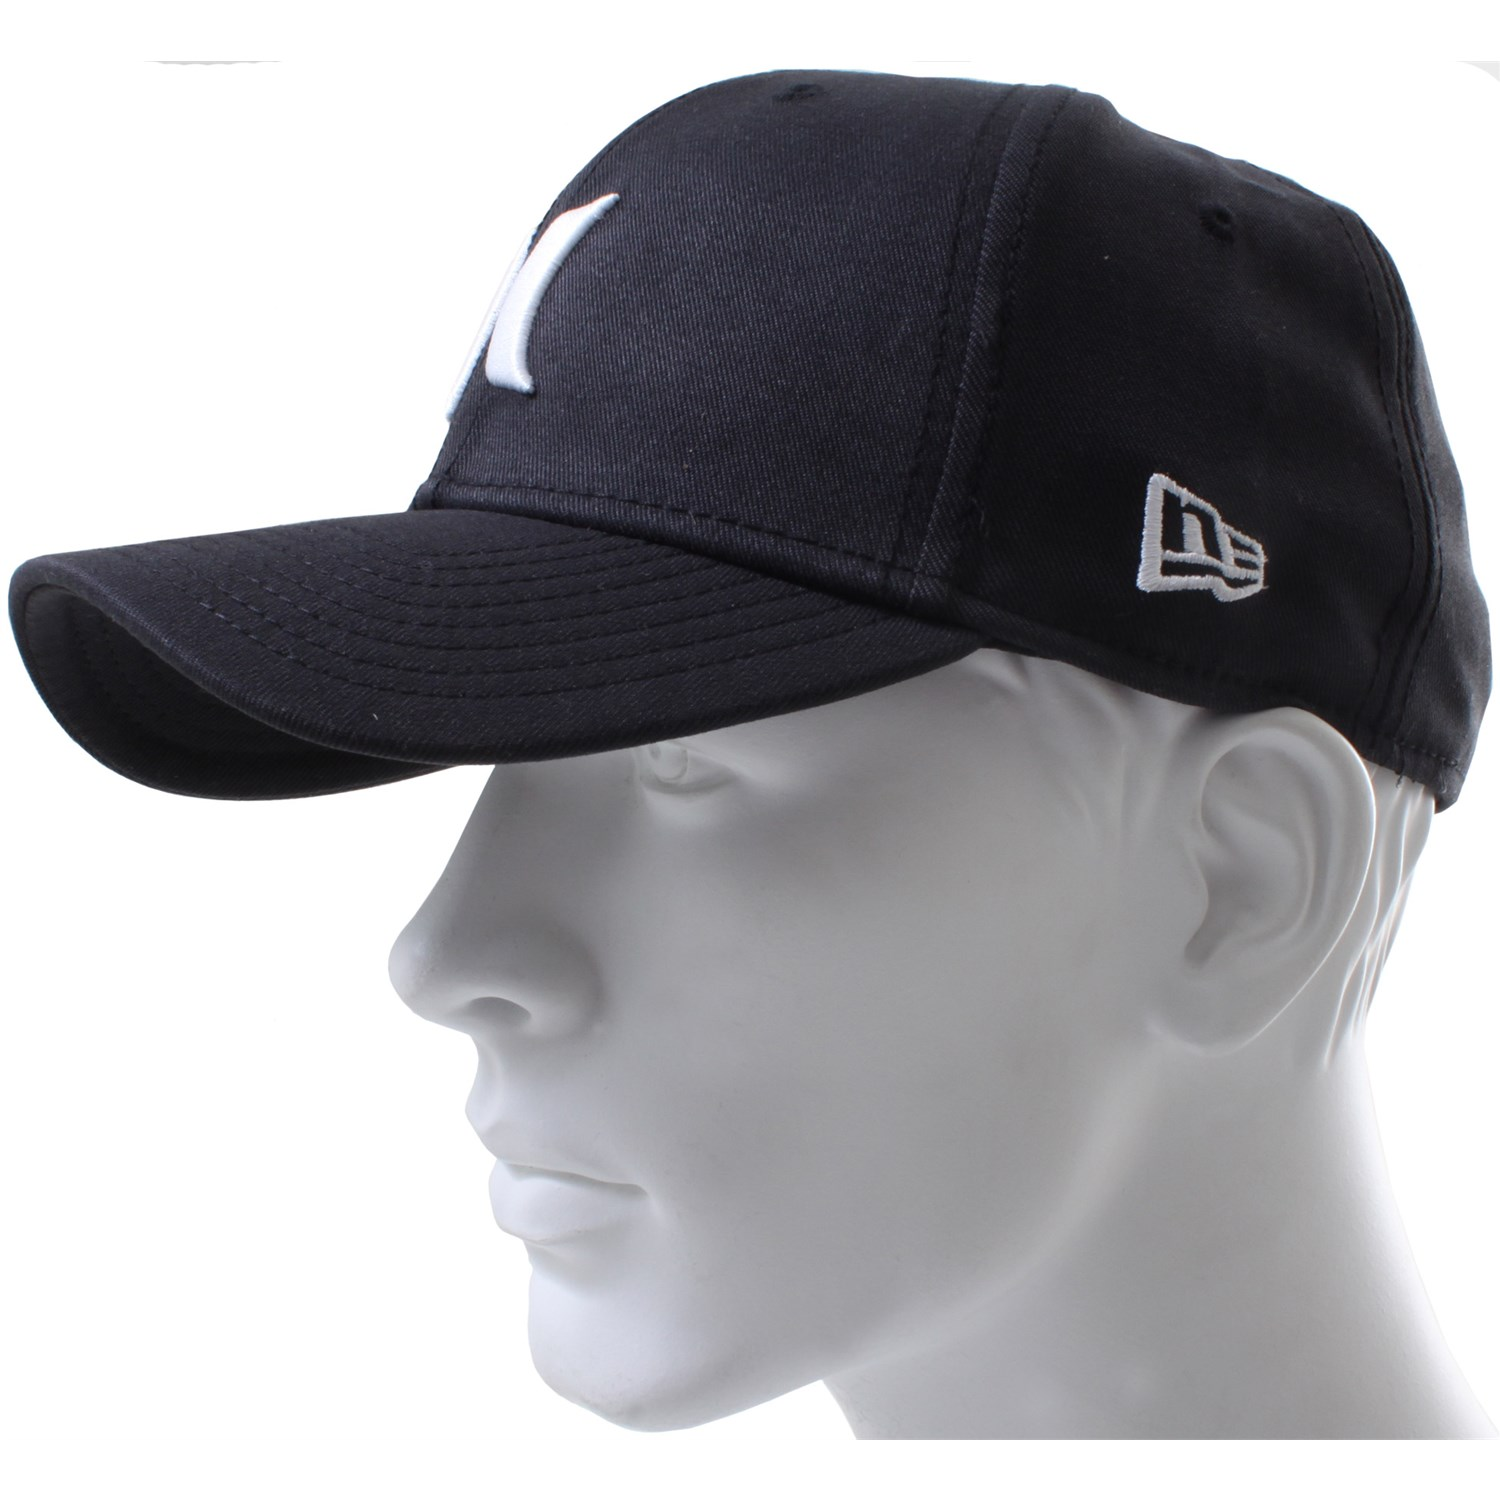 White New Hurley One and Only Hat